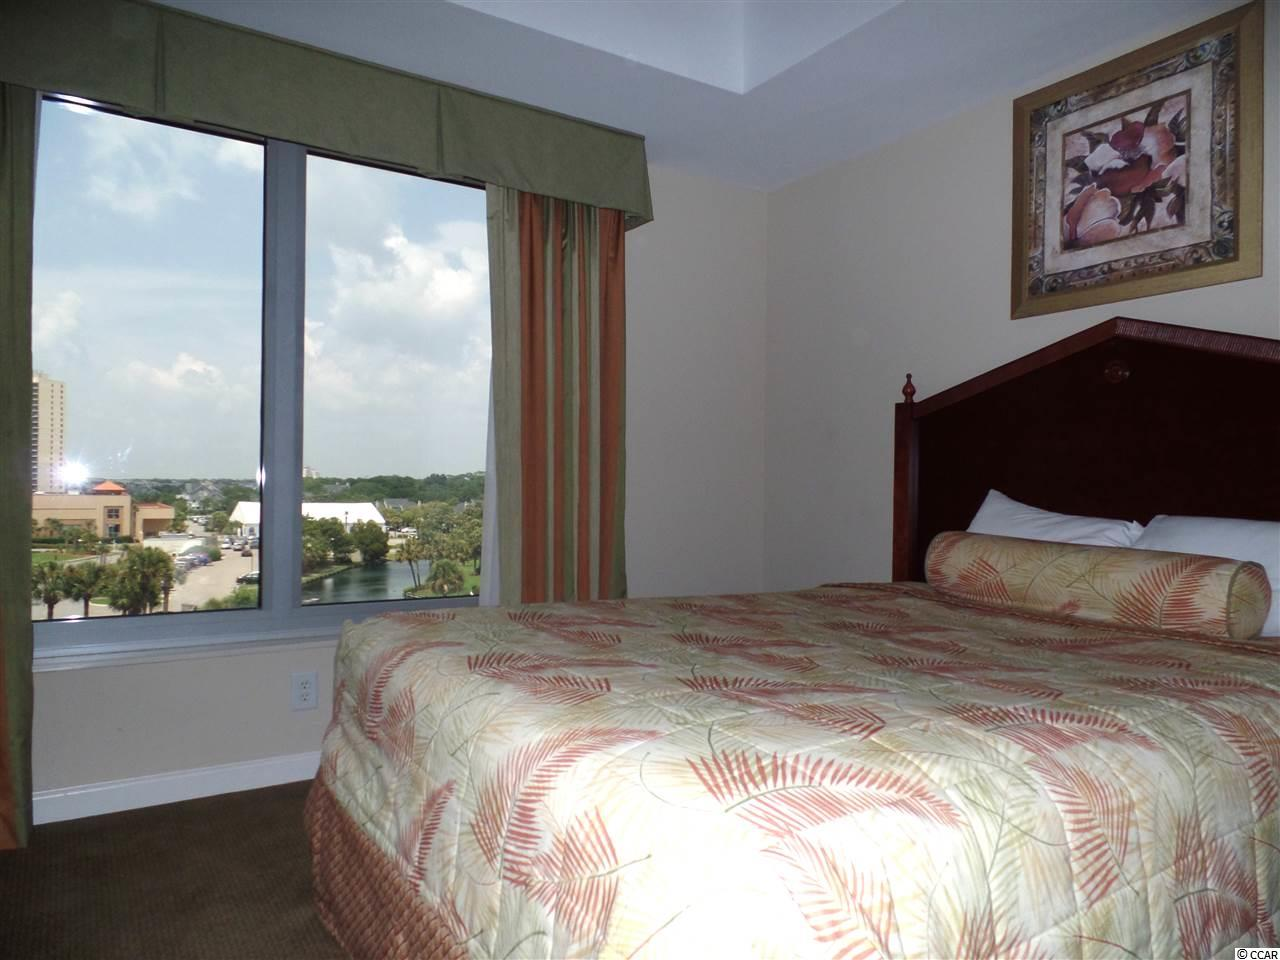 This 3 bedroom condo at  Royale Palms is currently for sale